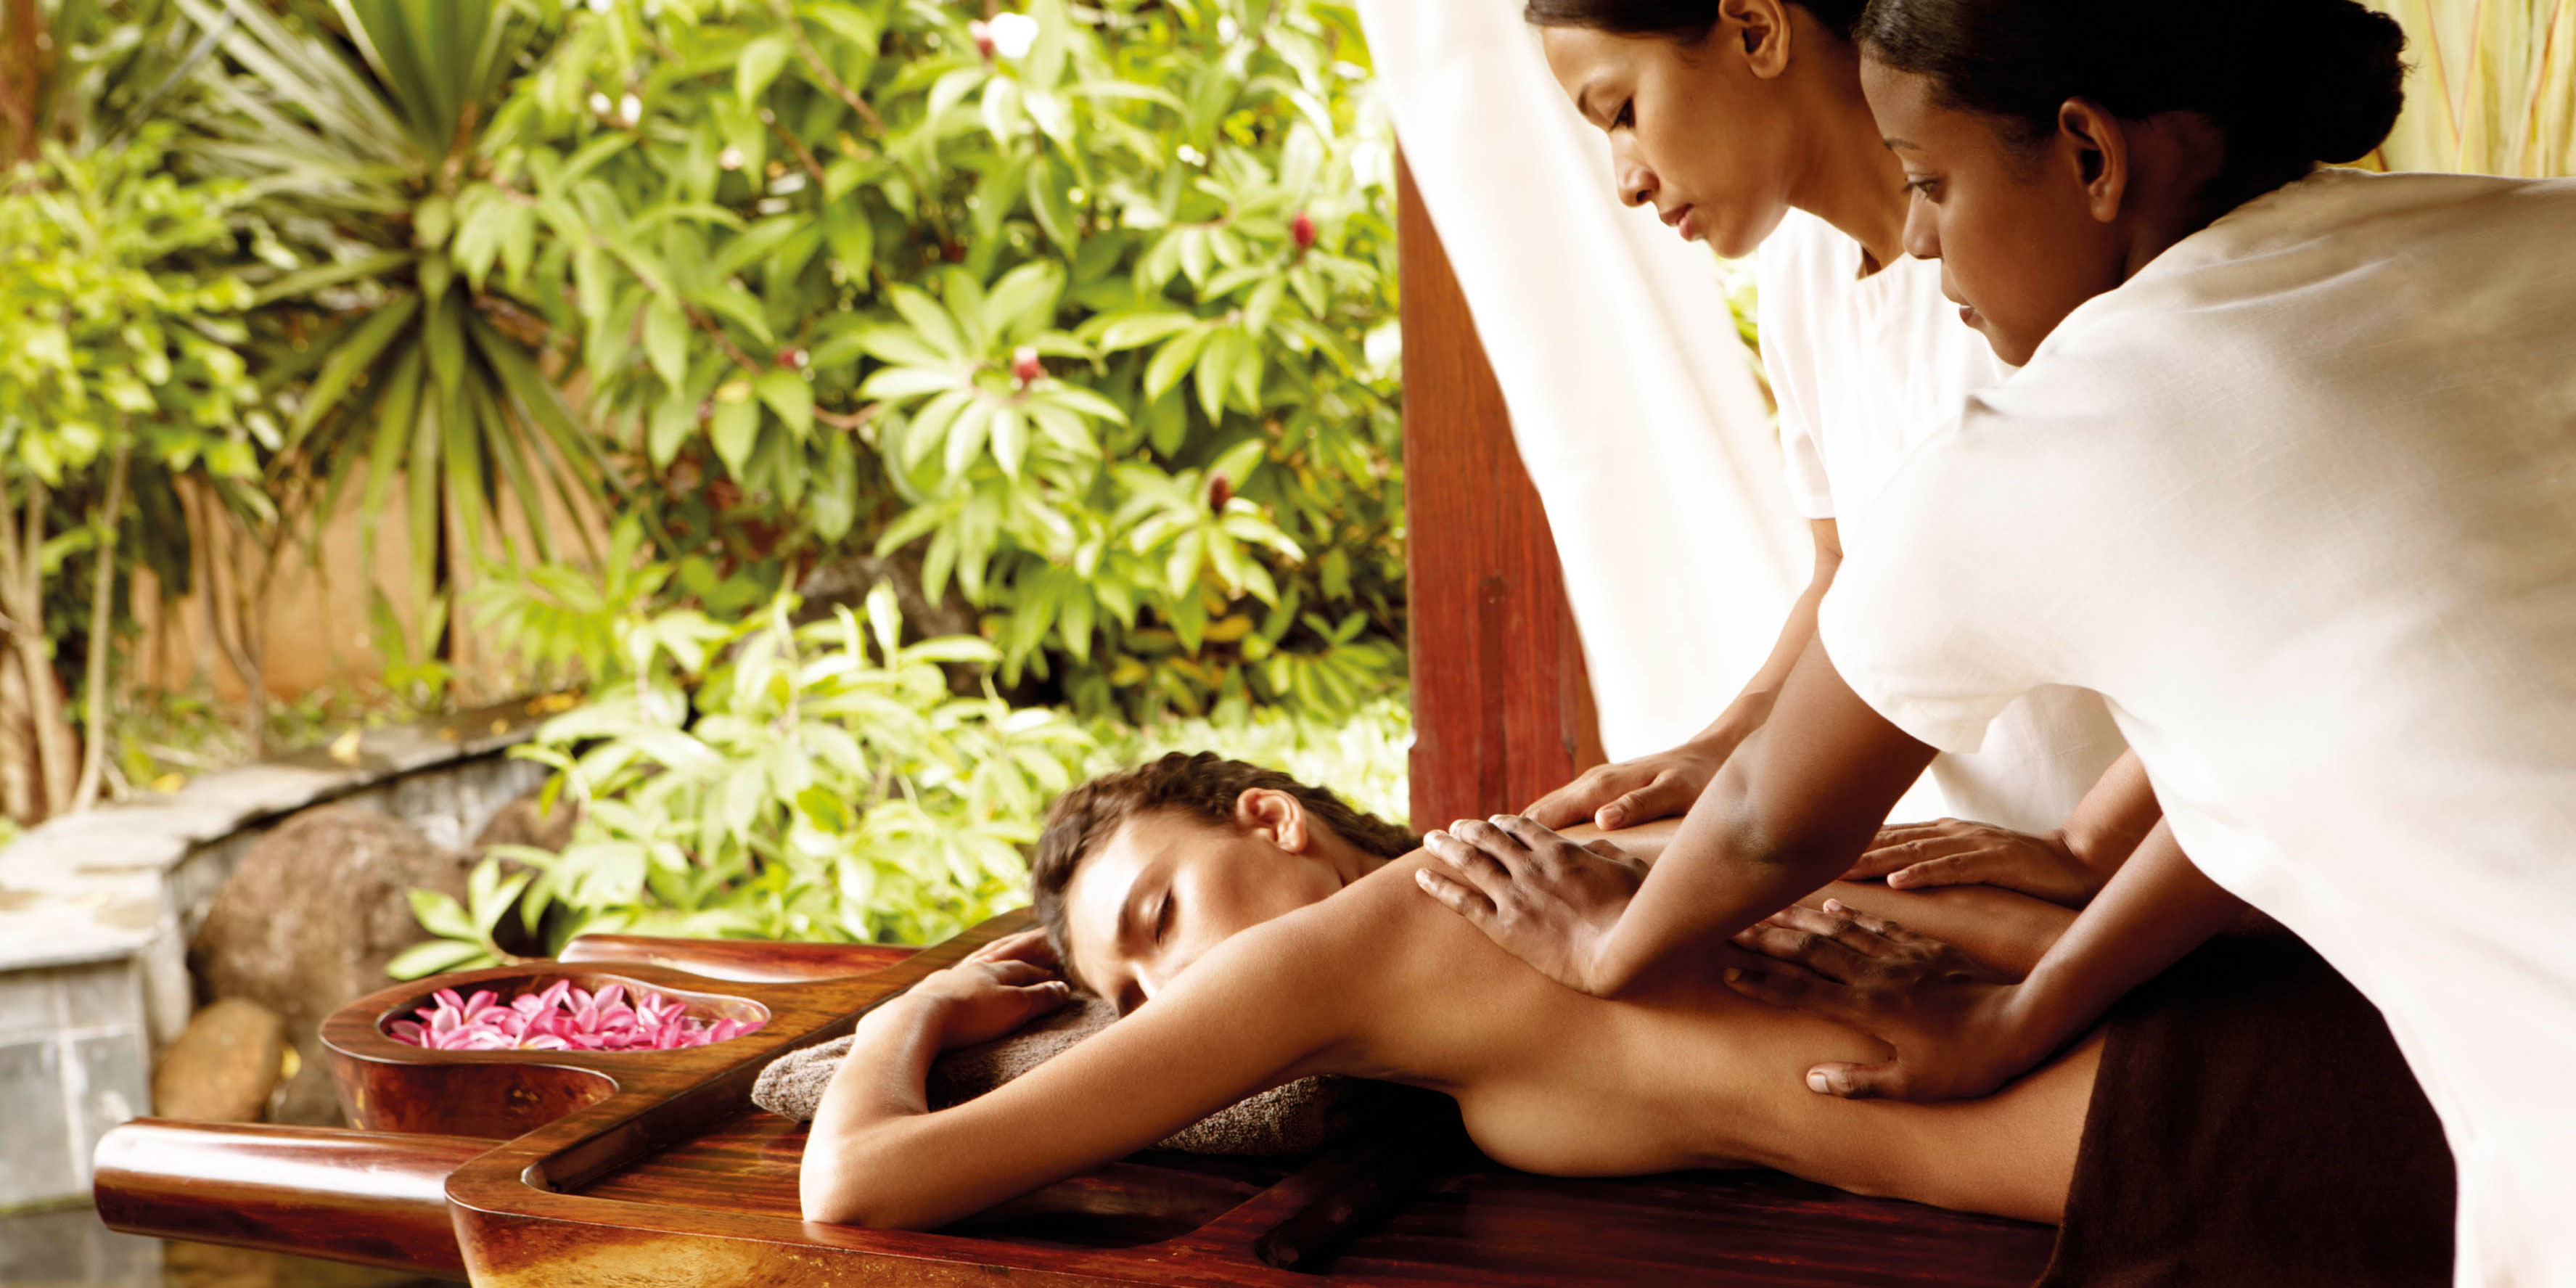 Aryuveda massage